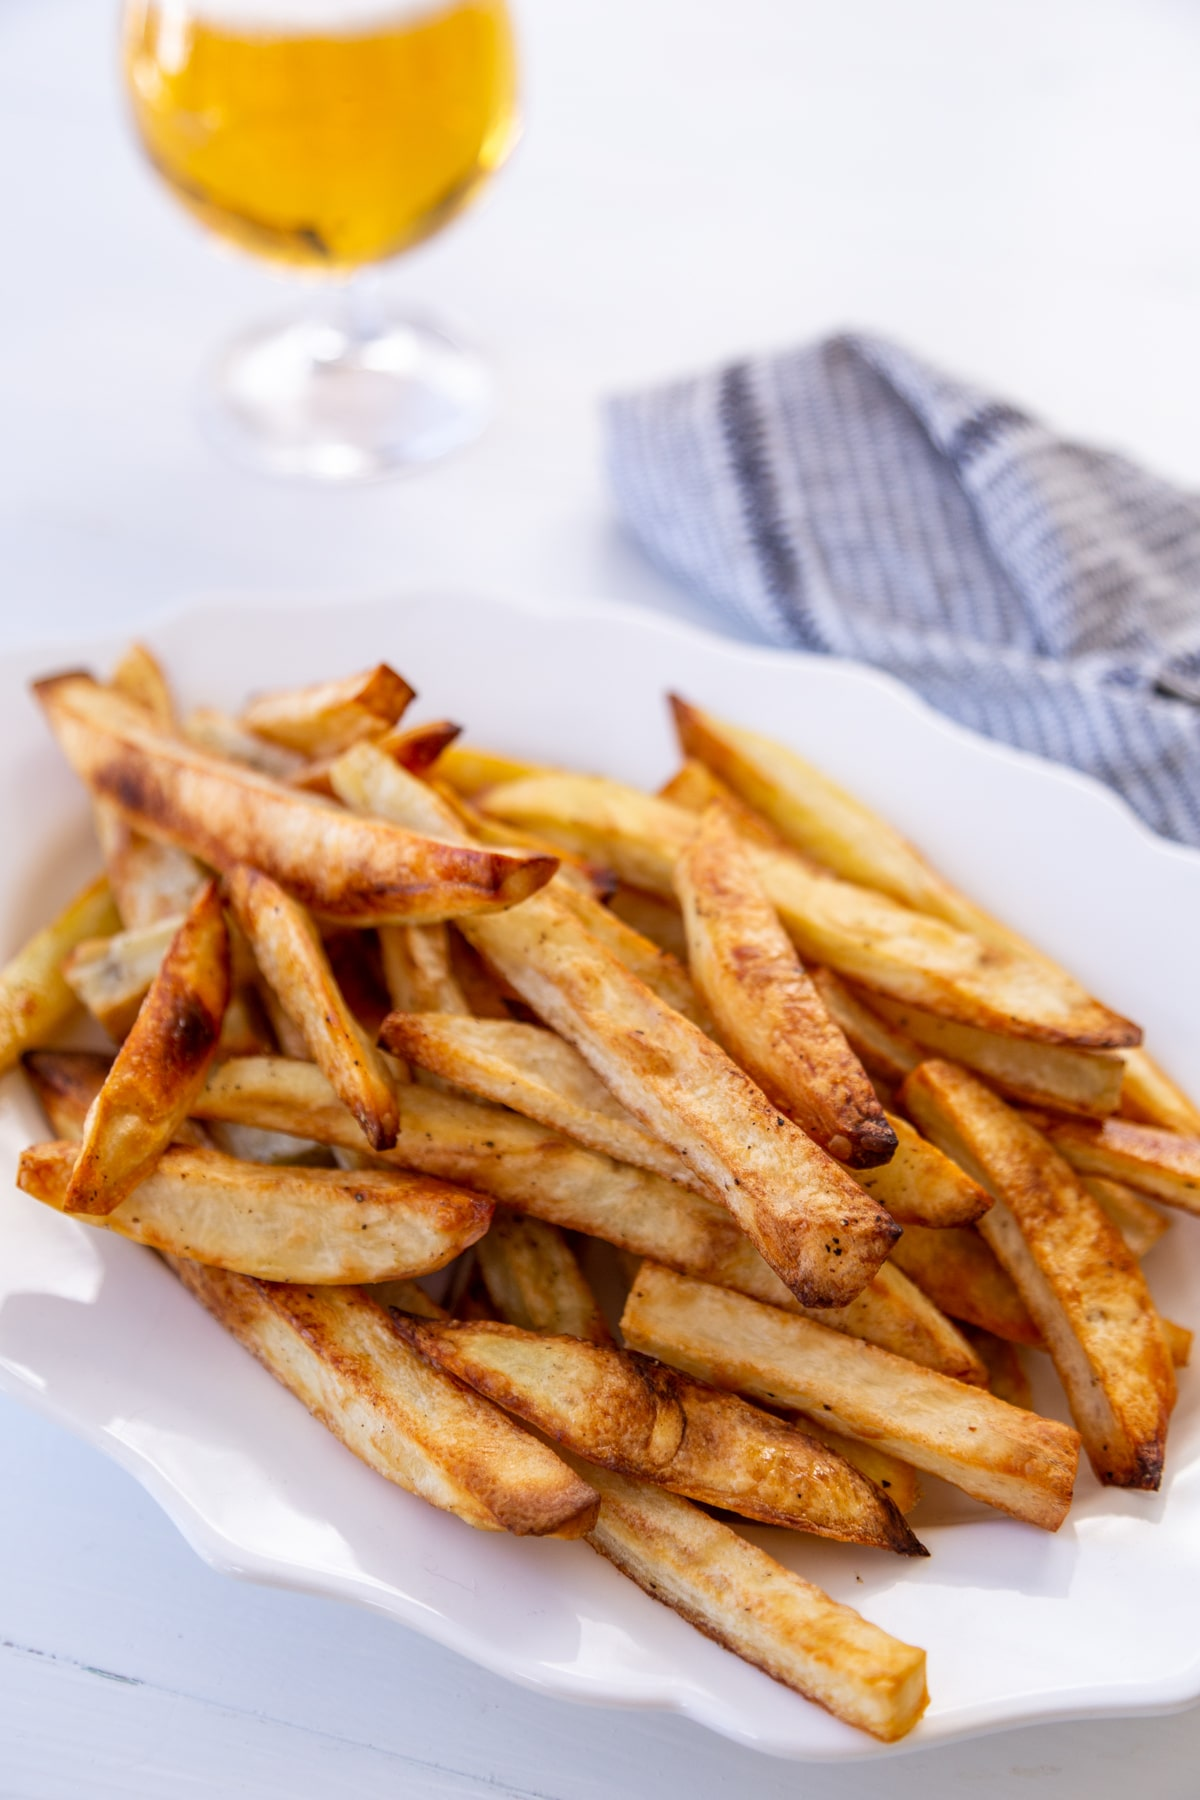 A white oval scalloped edge platter with a pile of fries and a glass of beer and a black and white towel next to the platter.